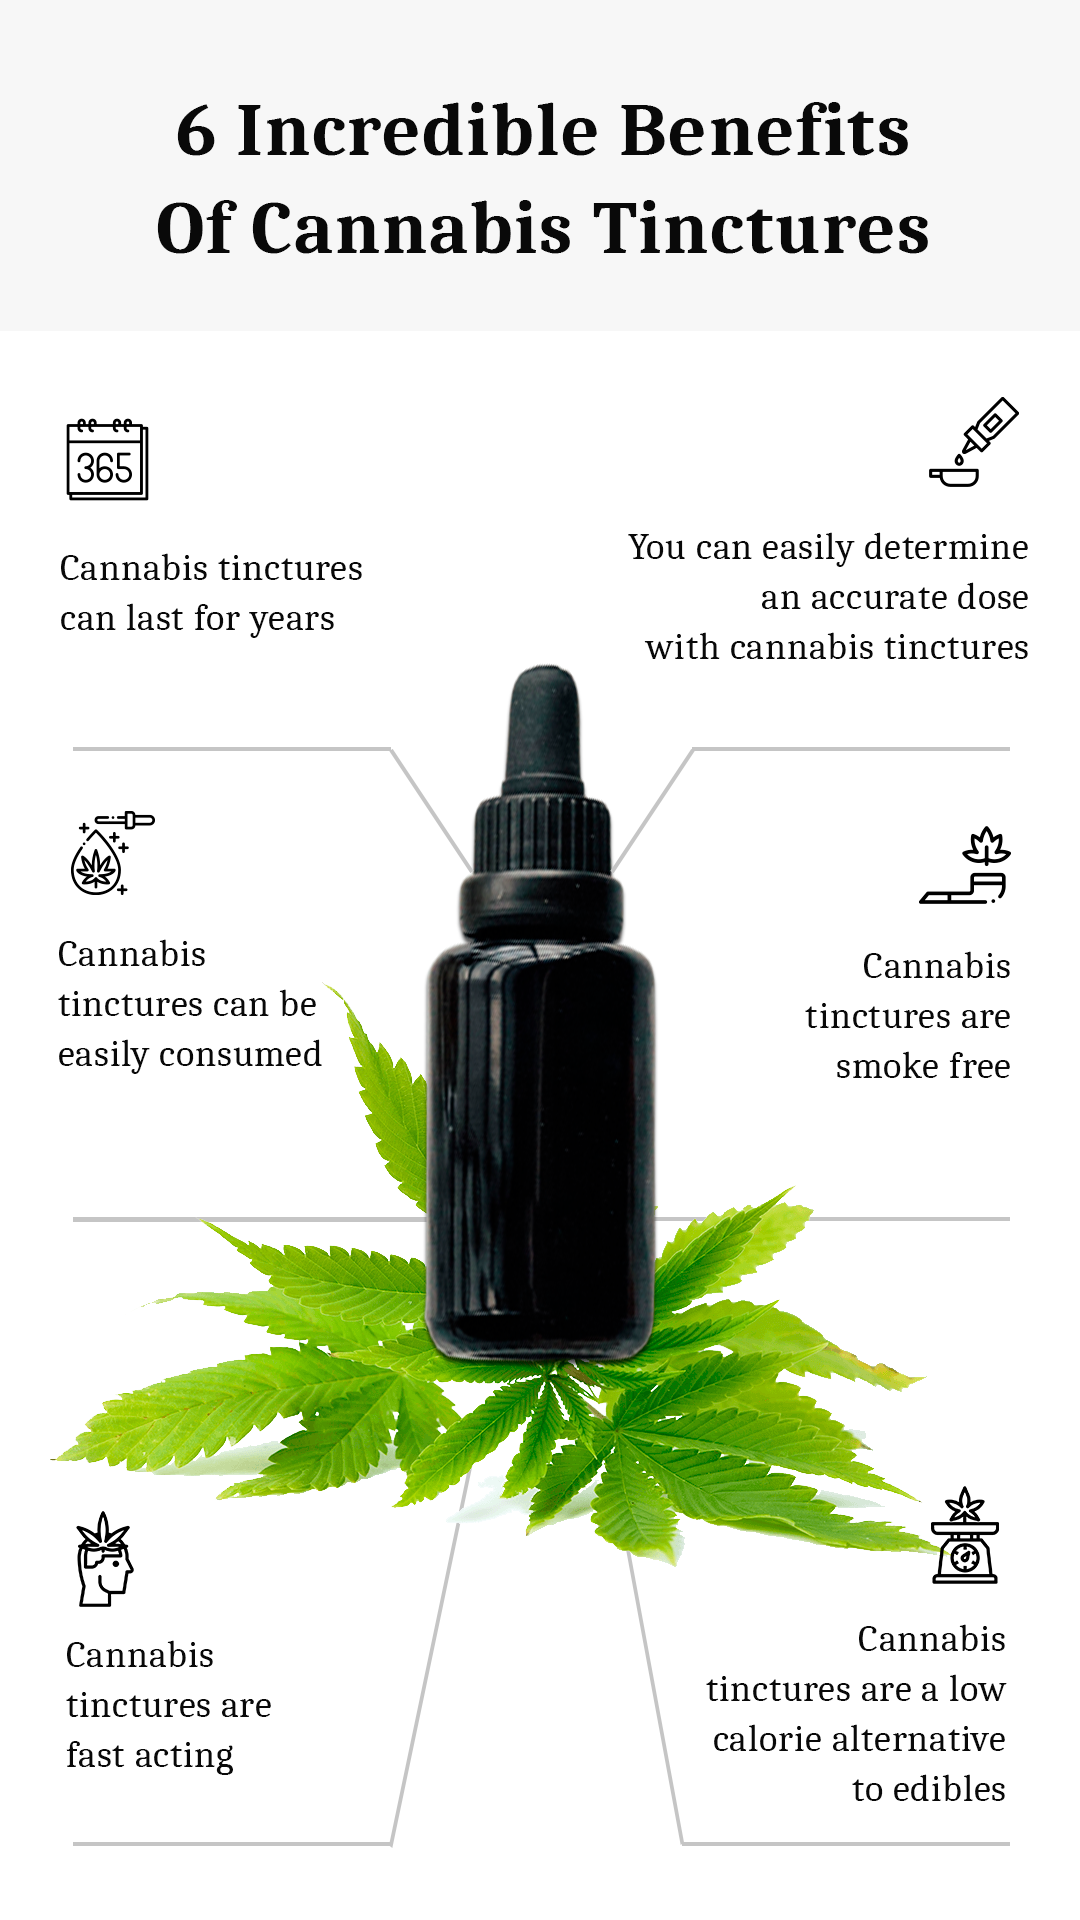 6 Incredible Benefits of Cannabis Tinctures - Hoja